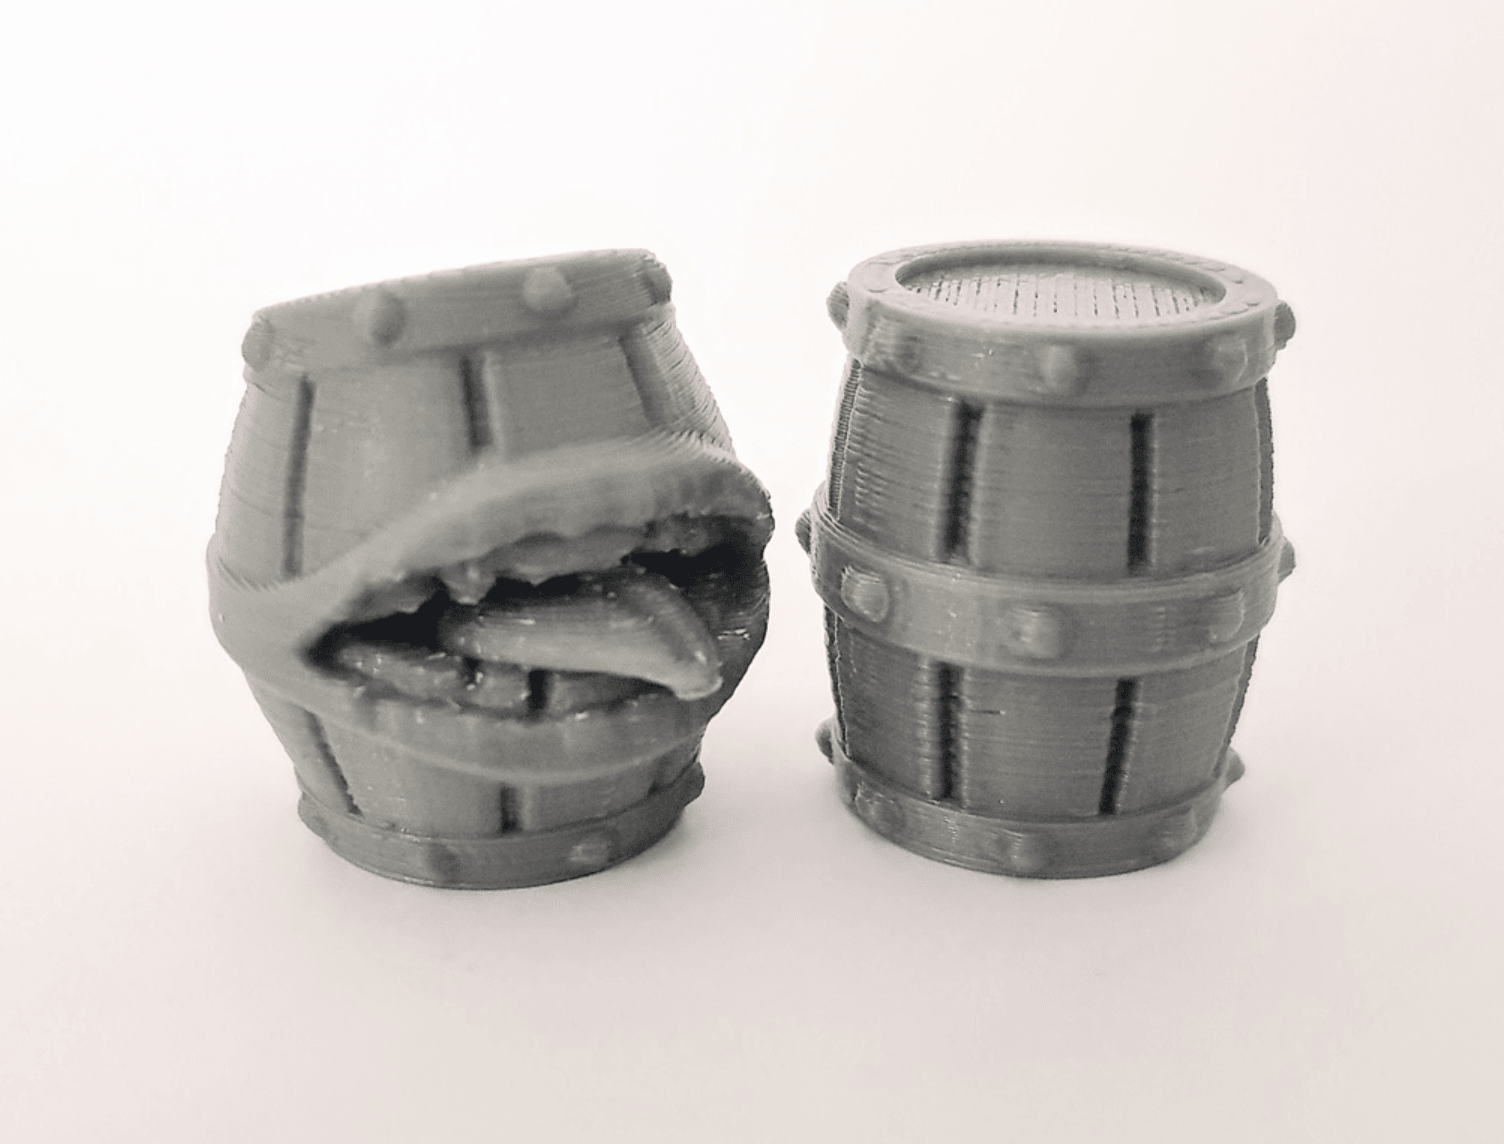 Capture d'écran 2018-02-07 à 17.15.17.png Download free STL file Barrel and Mimic Barrel • 3D printable object, daandruff